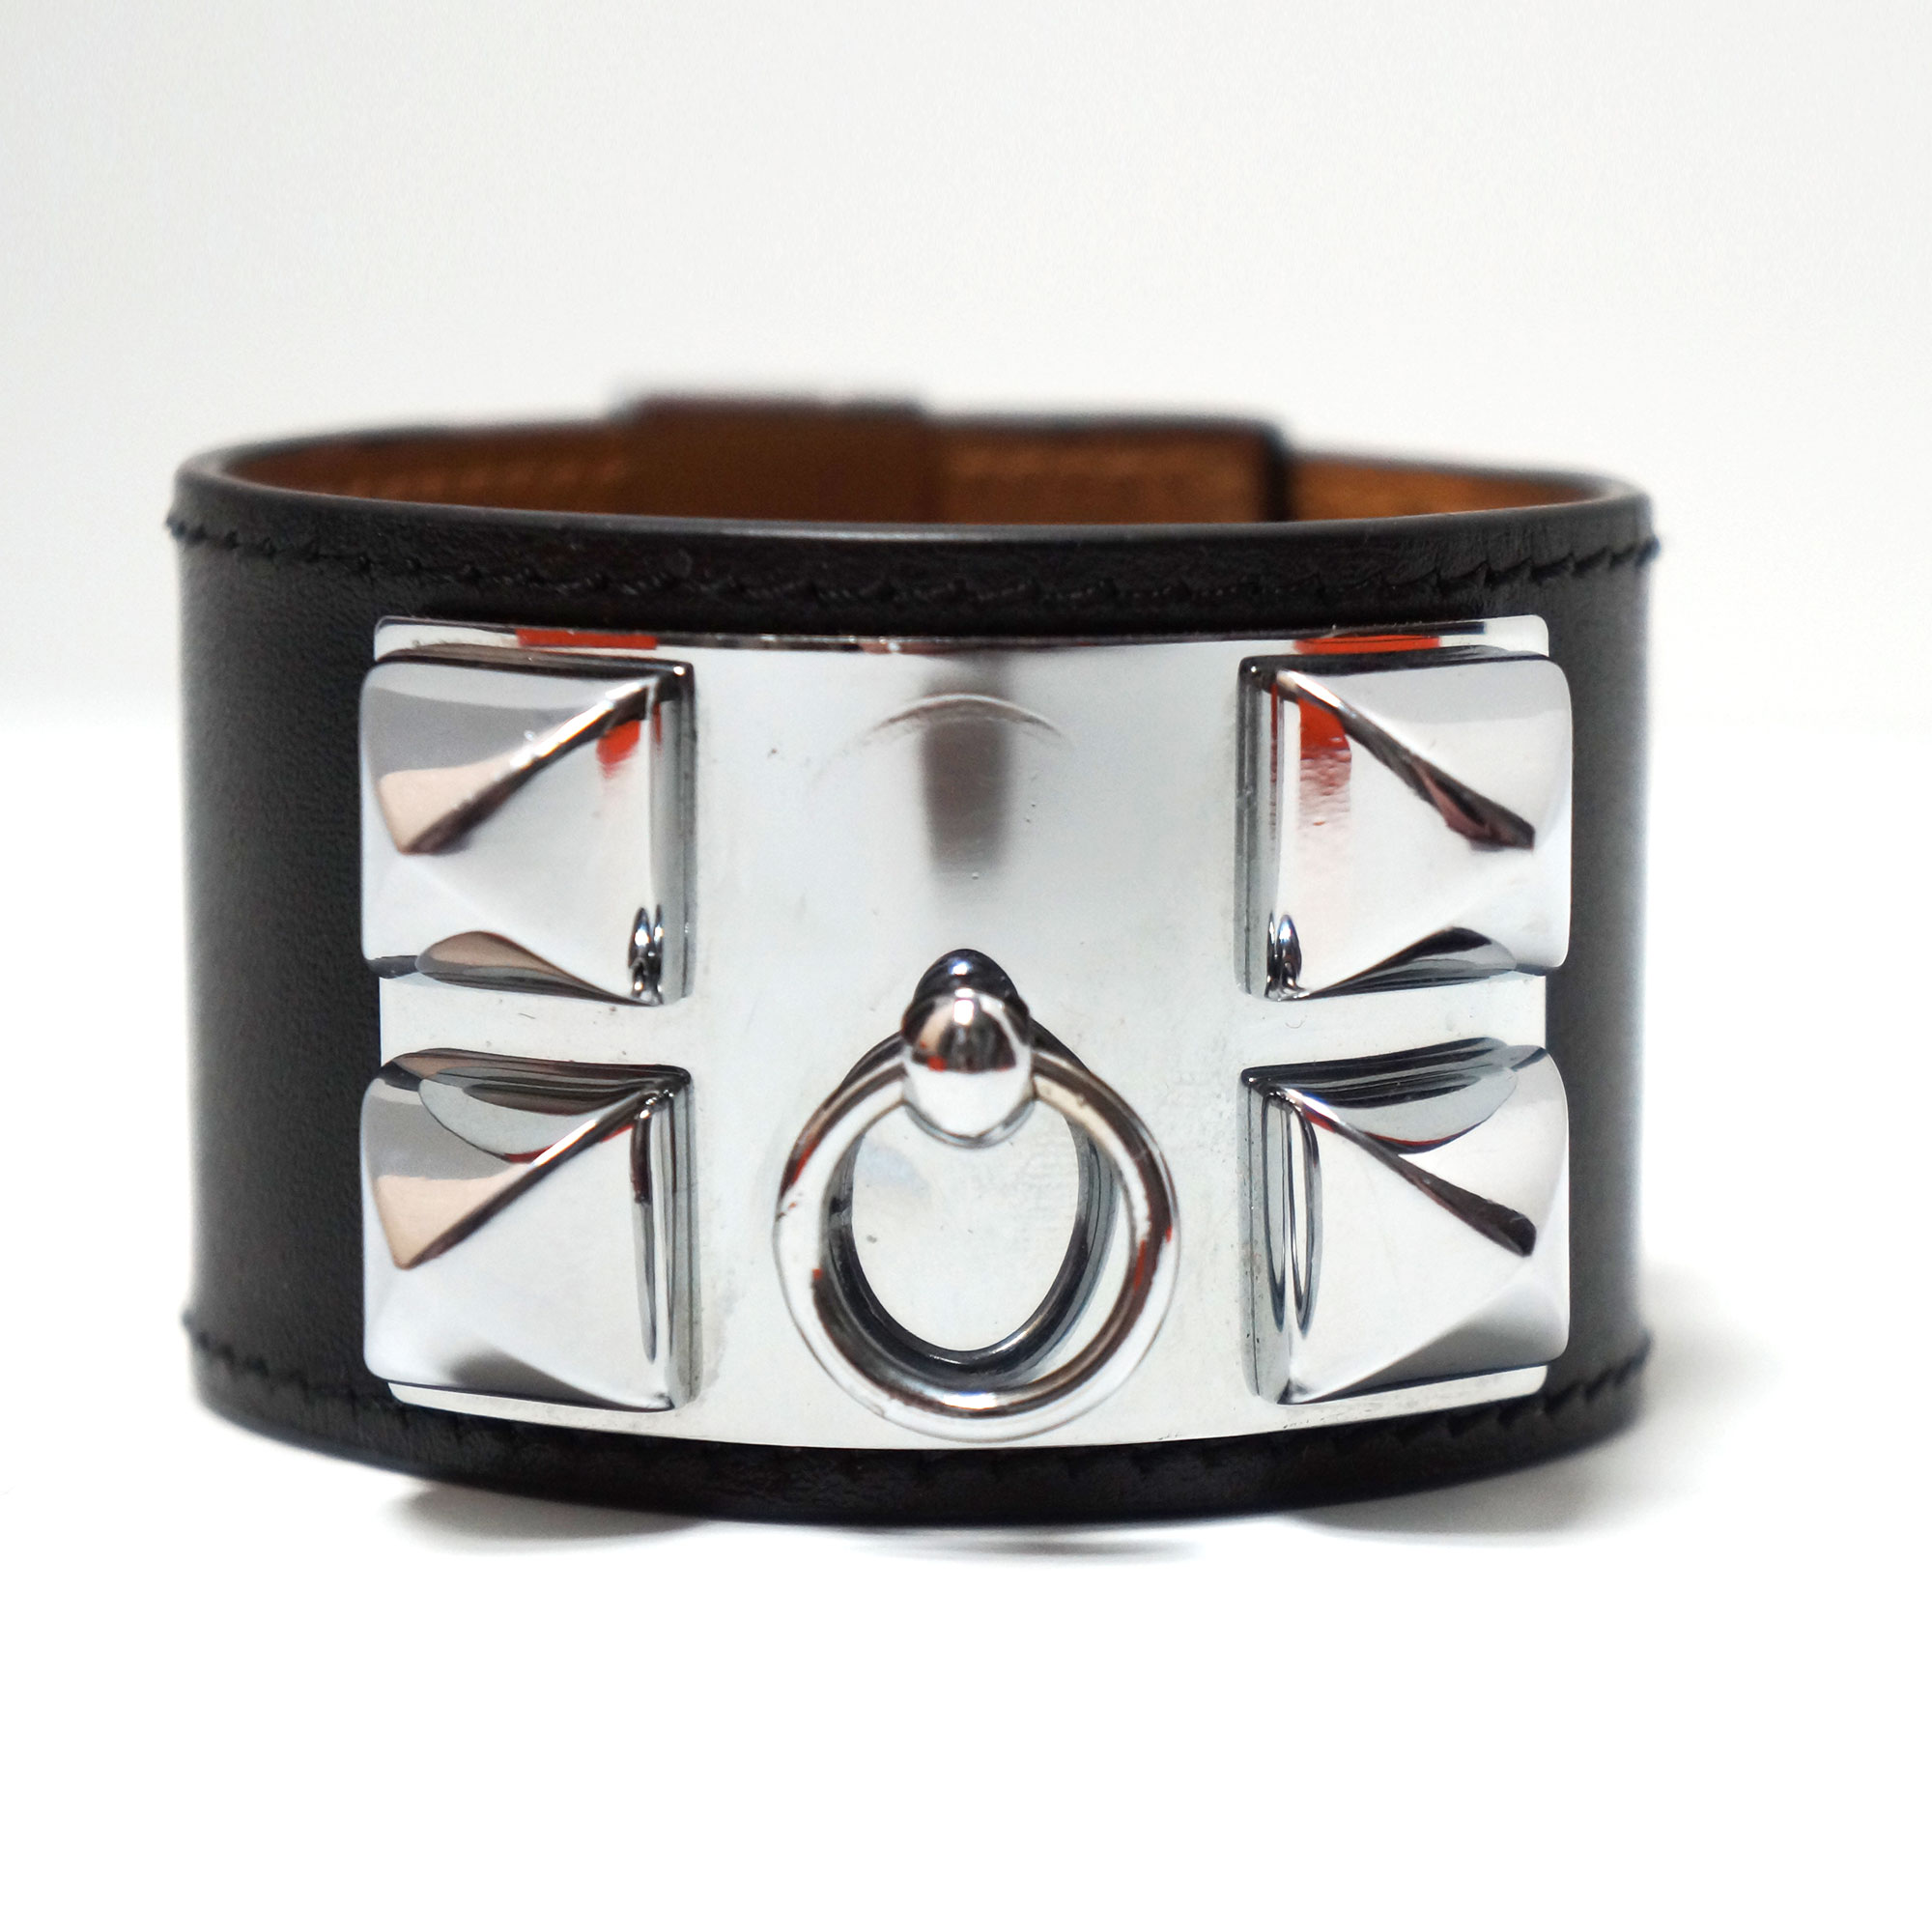 my jpg collier chien in or black keep bracelet calfskin dsc not leather de threads chamonix